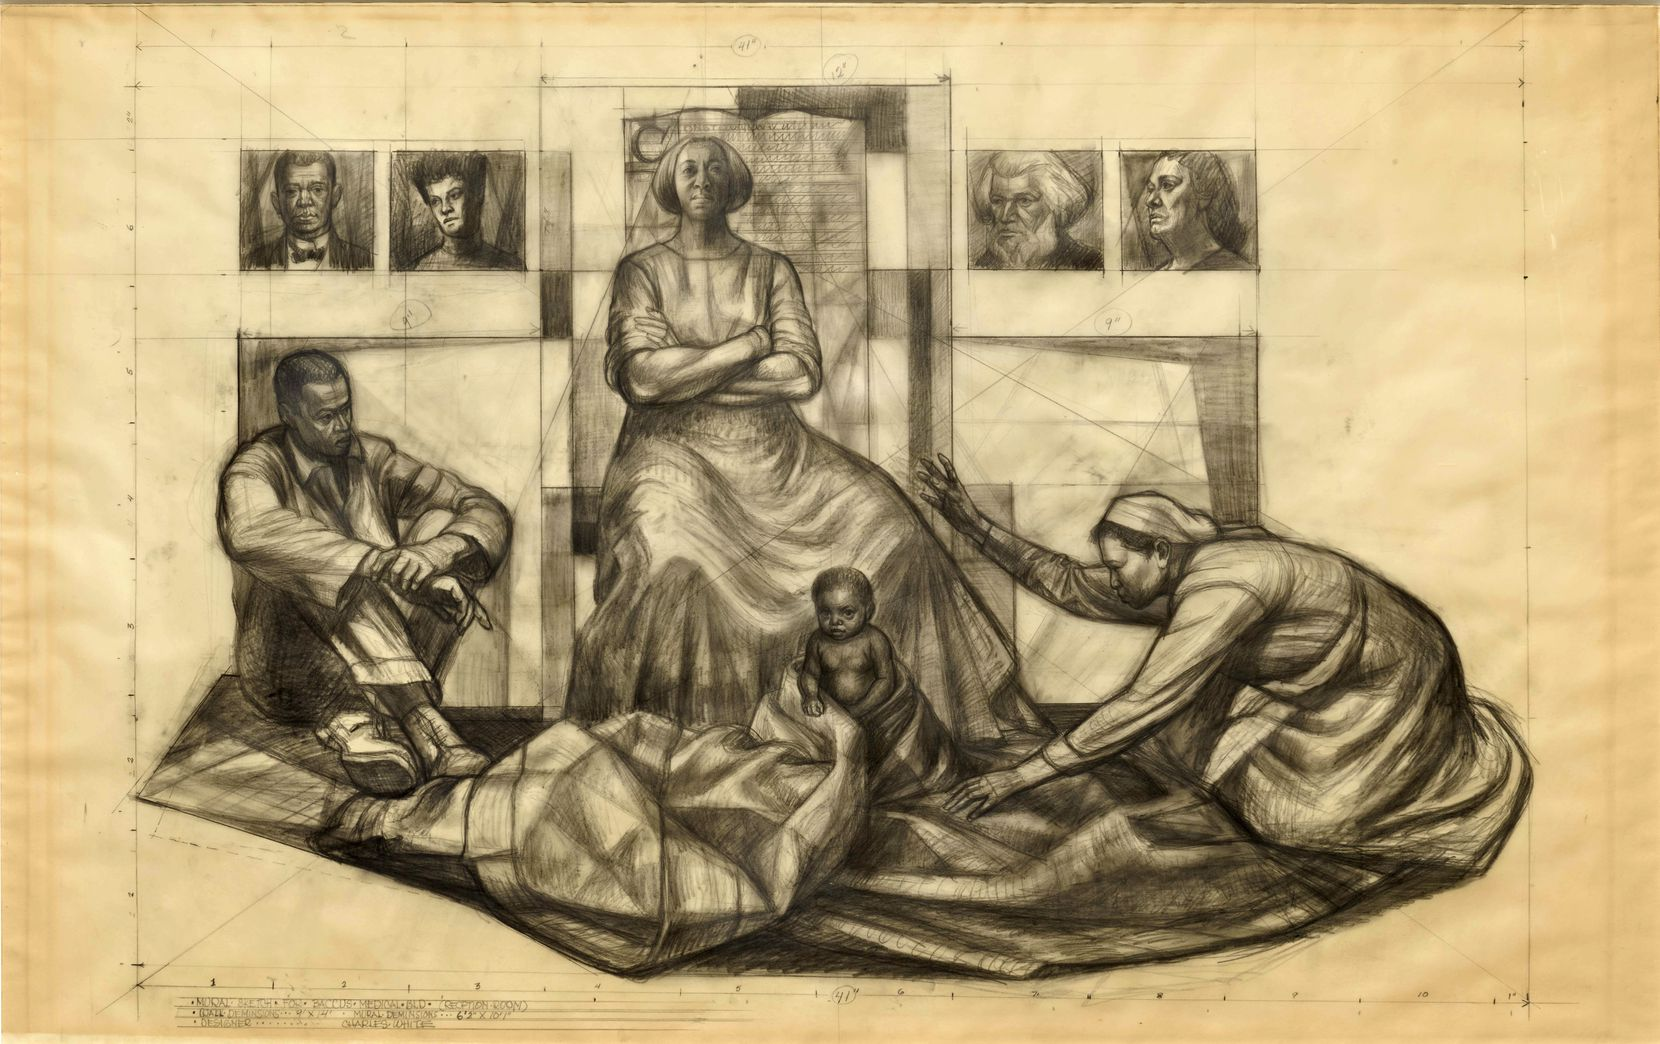 Charles White's 1961 study for a mural on the Baccus Medical Building in Dallas combines the solid dignity of the early Renaissance with the simplified geometry of Precisionism.